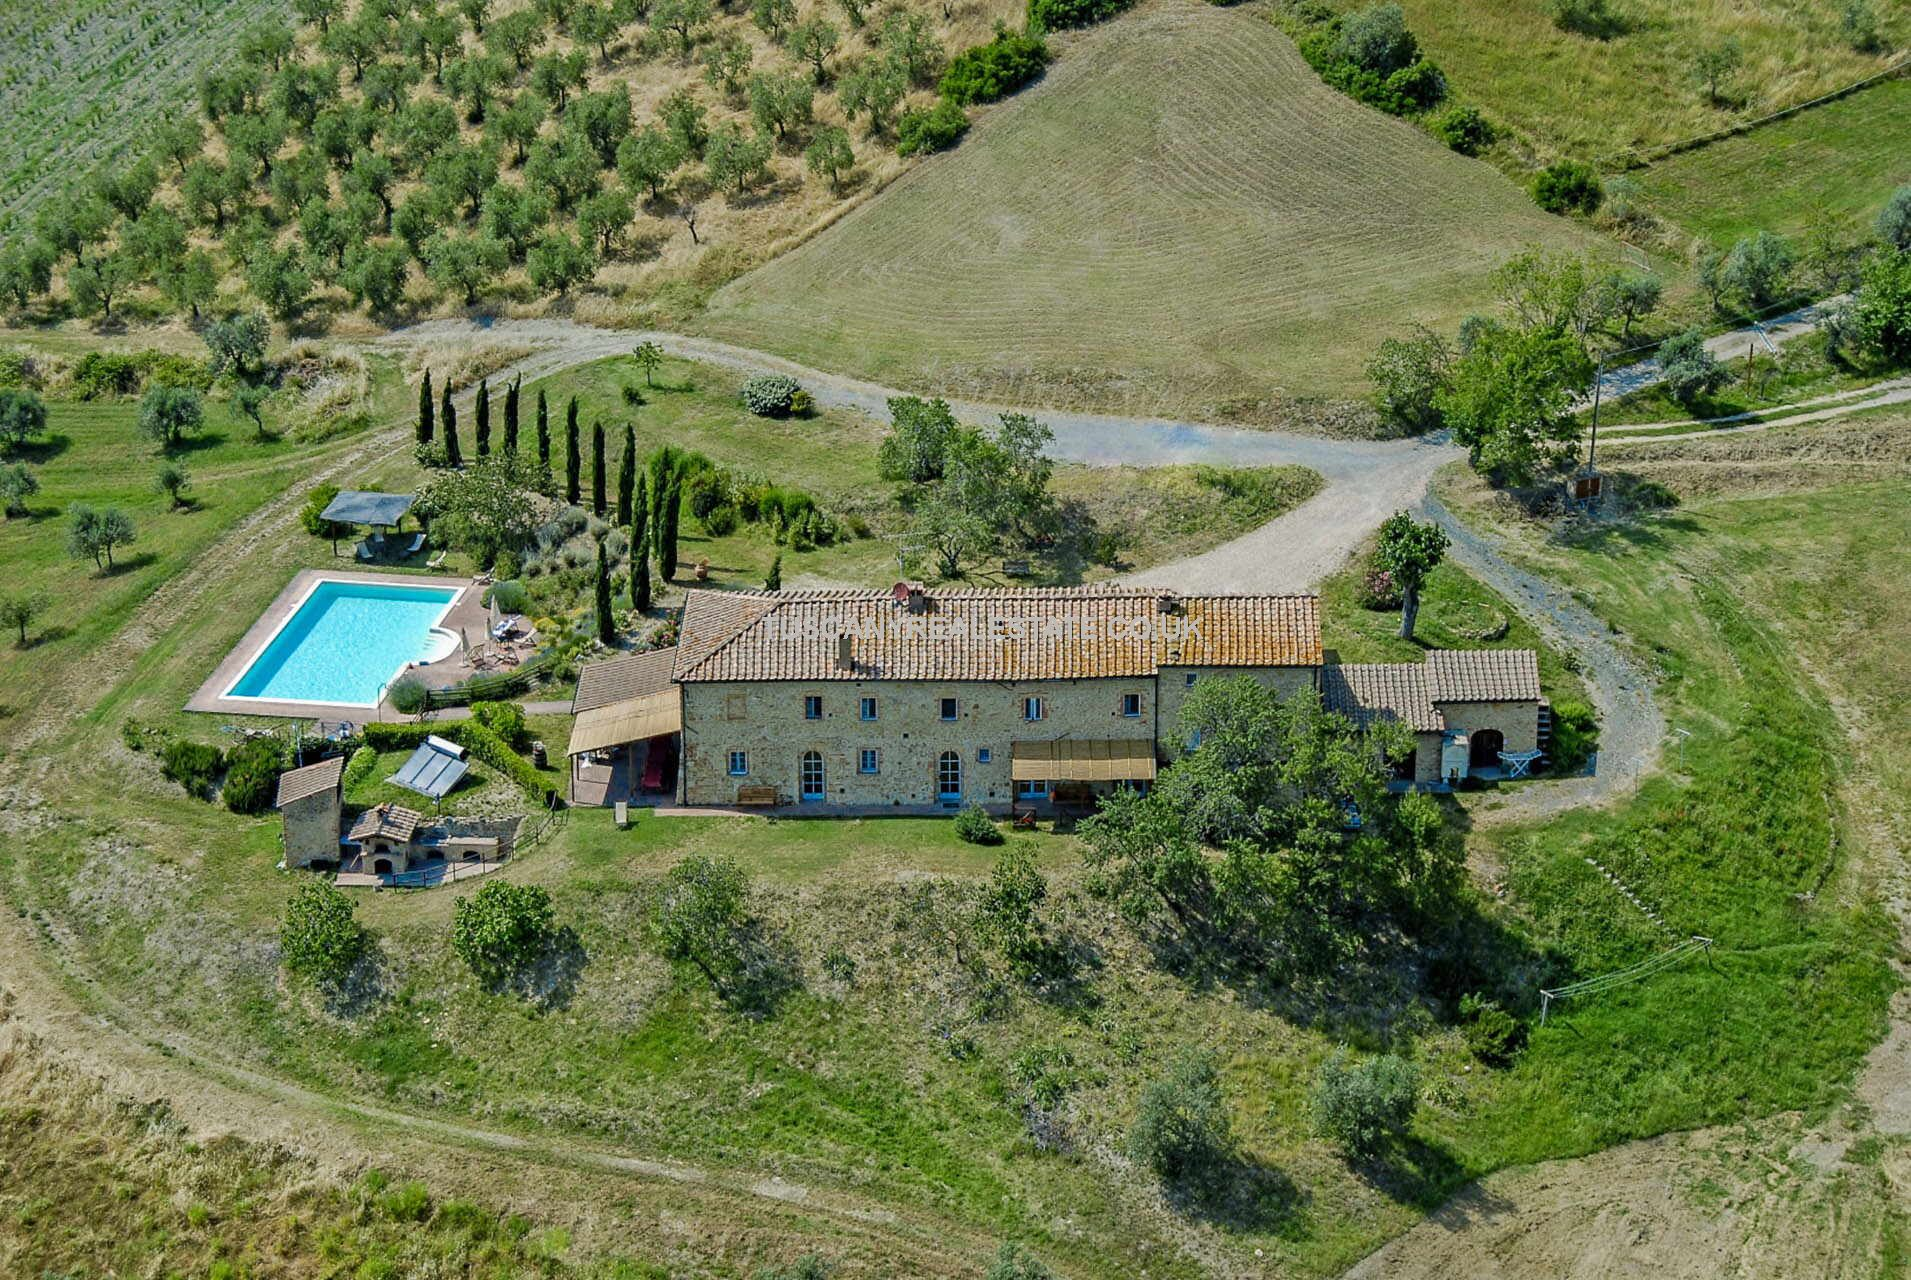 Agriturismo with Small Vineyard and Olive Grove